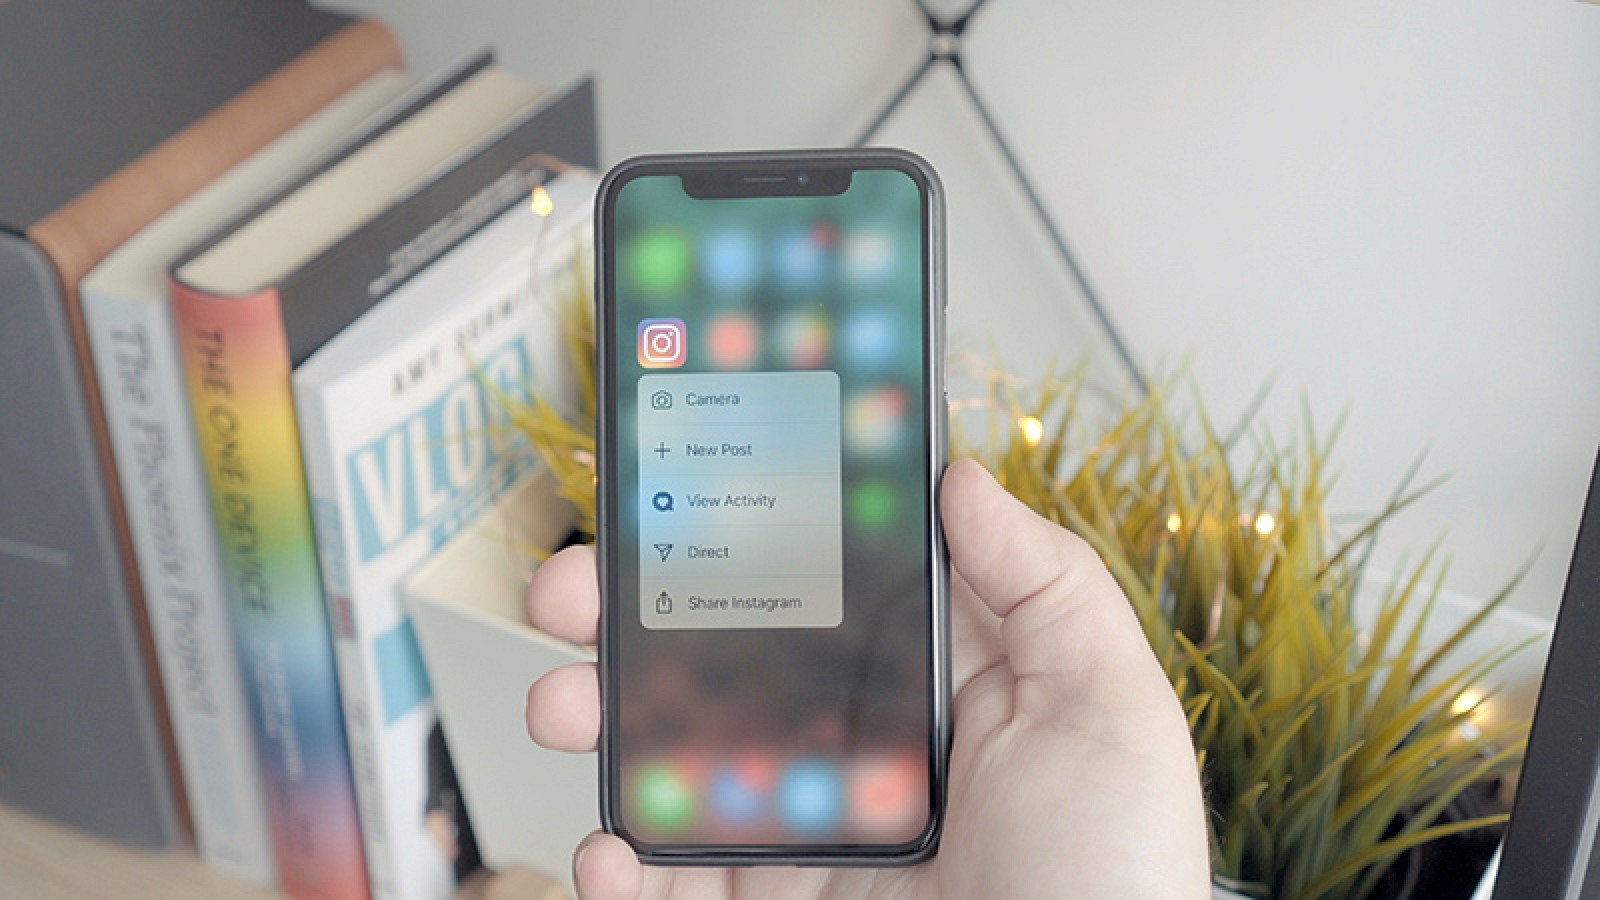 Most Useful 3D Touch Gestures on iPhone - MacRumors